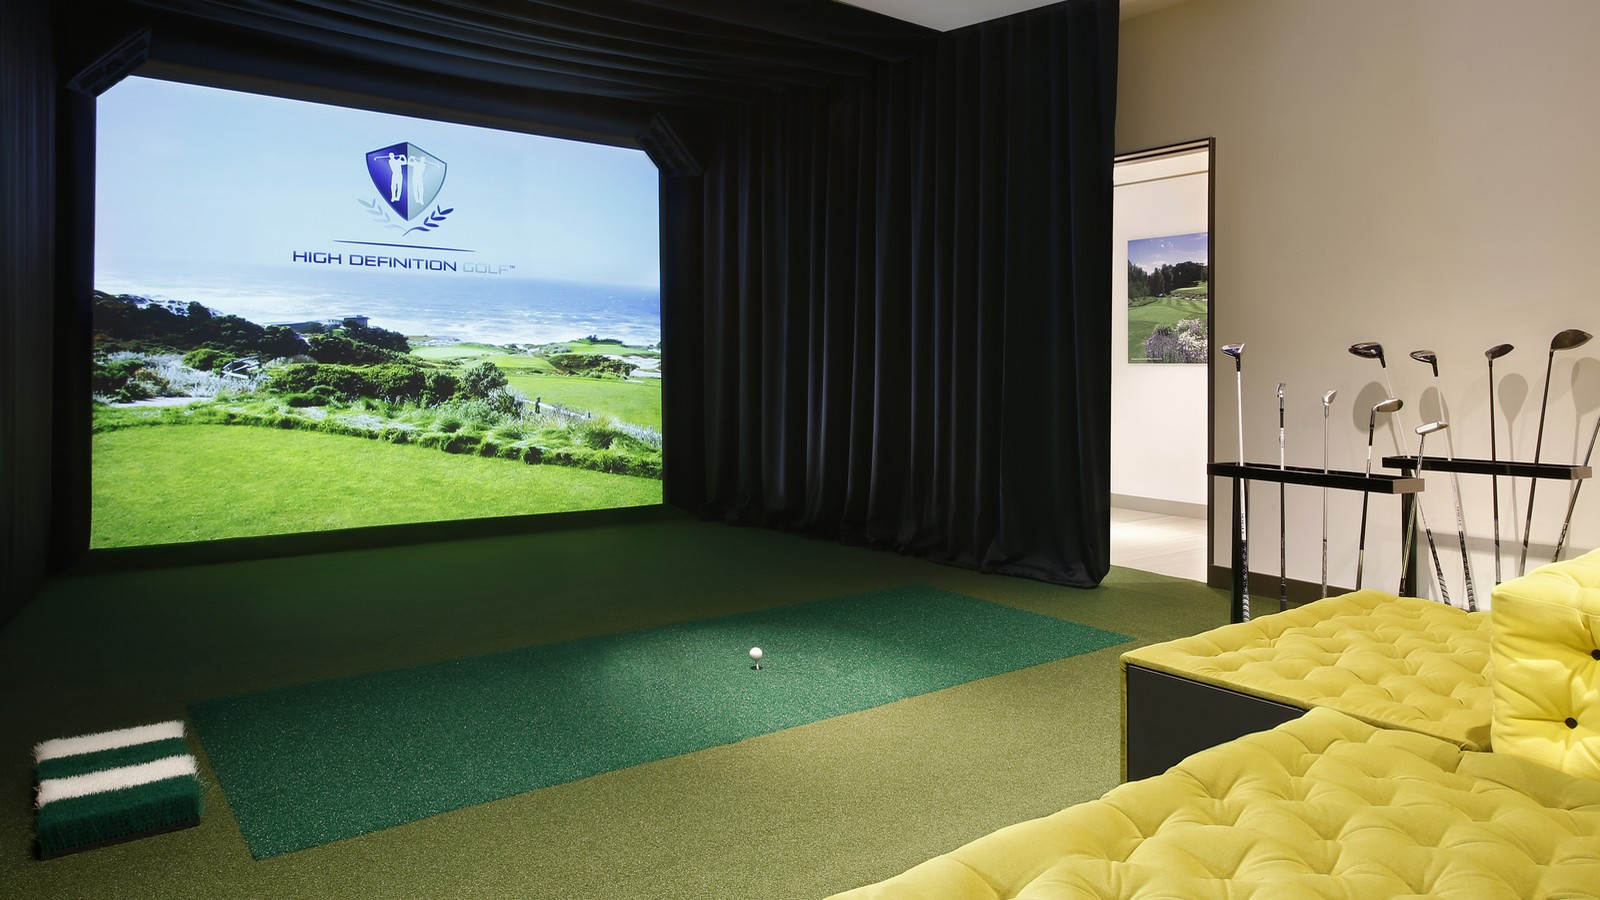 The Virtual Golf room